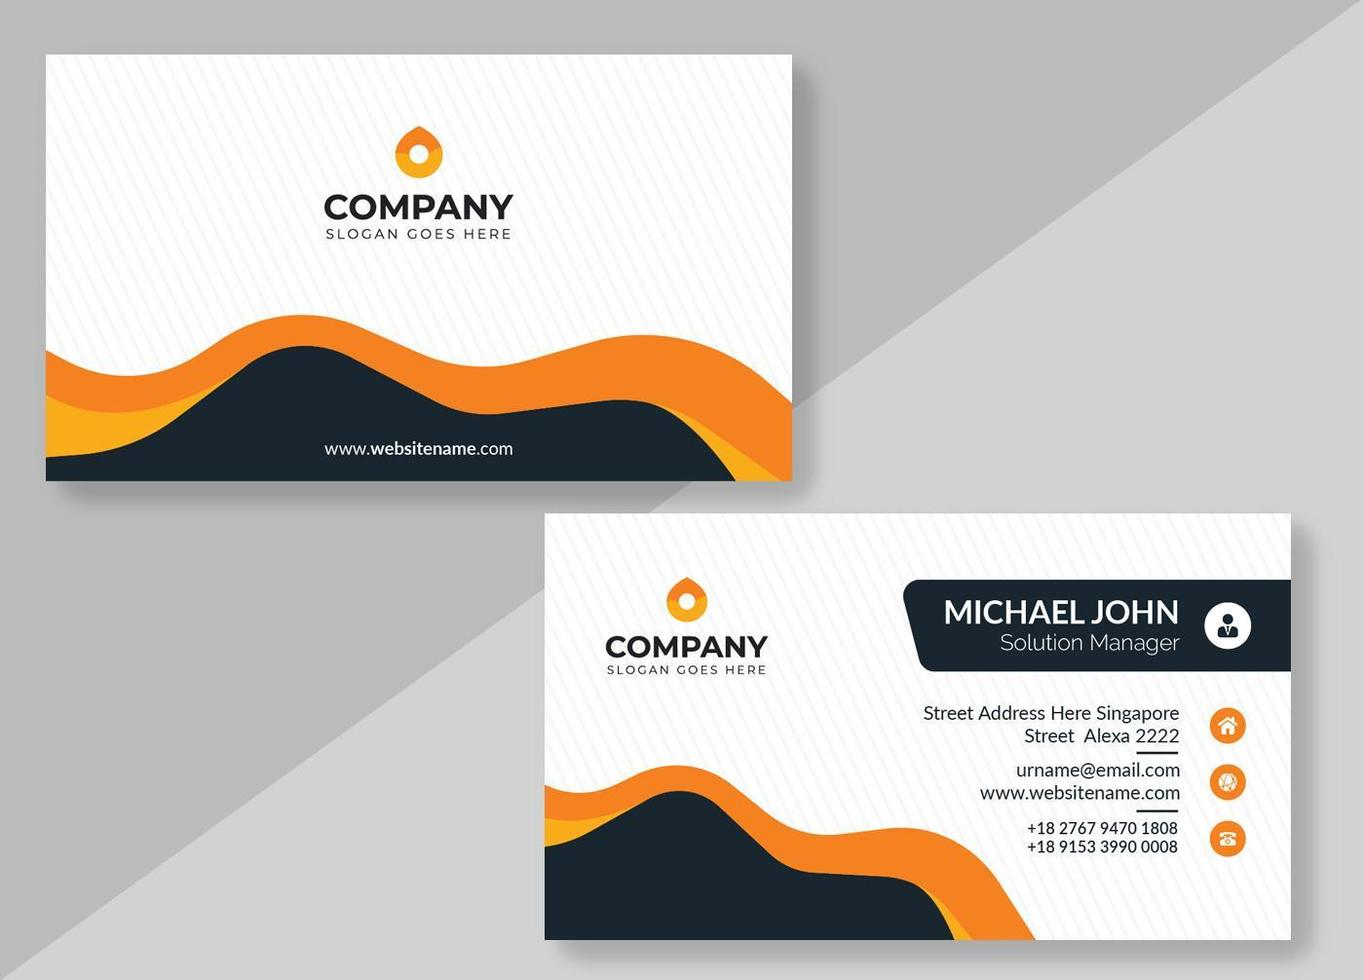 Striped Business Card with Orange and Black Shapes vector